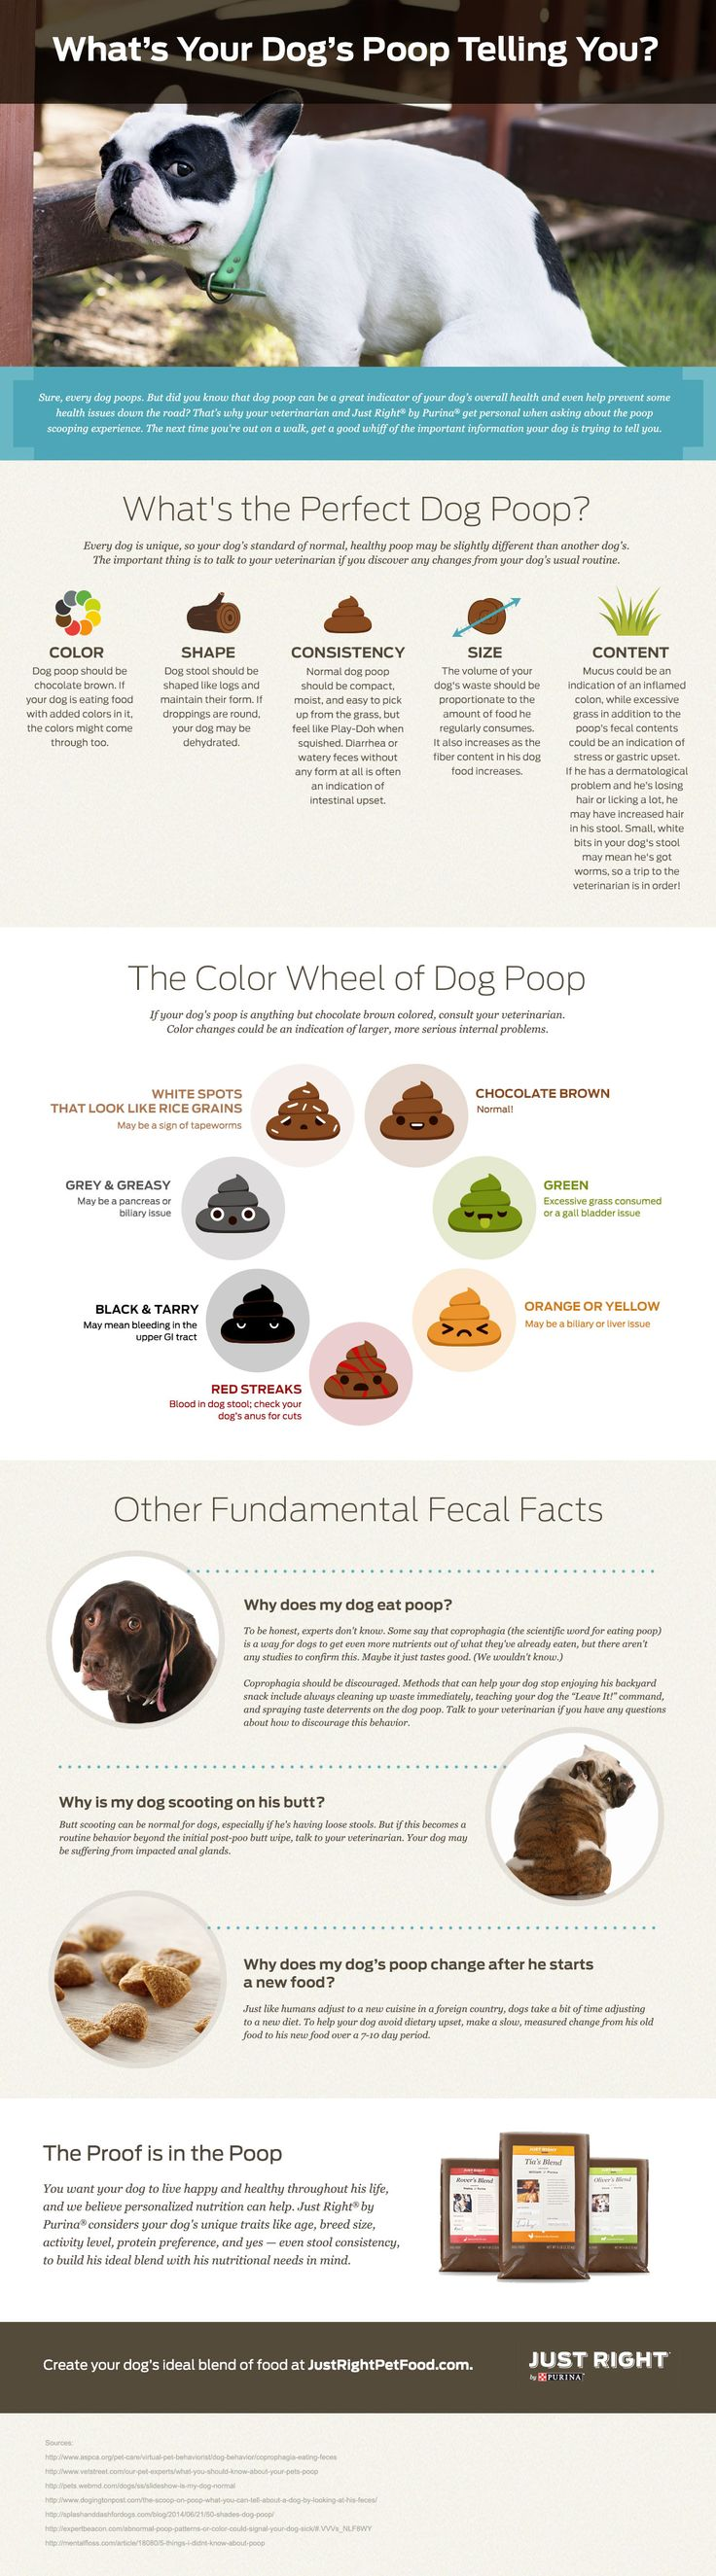 Dog Poop & What It Means   Just Right by Purina